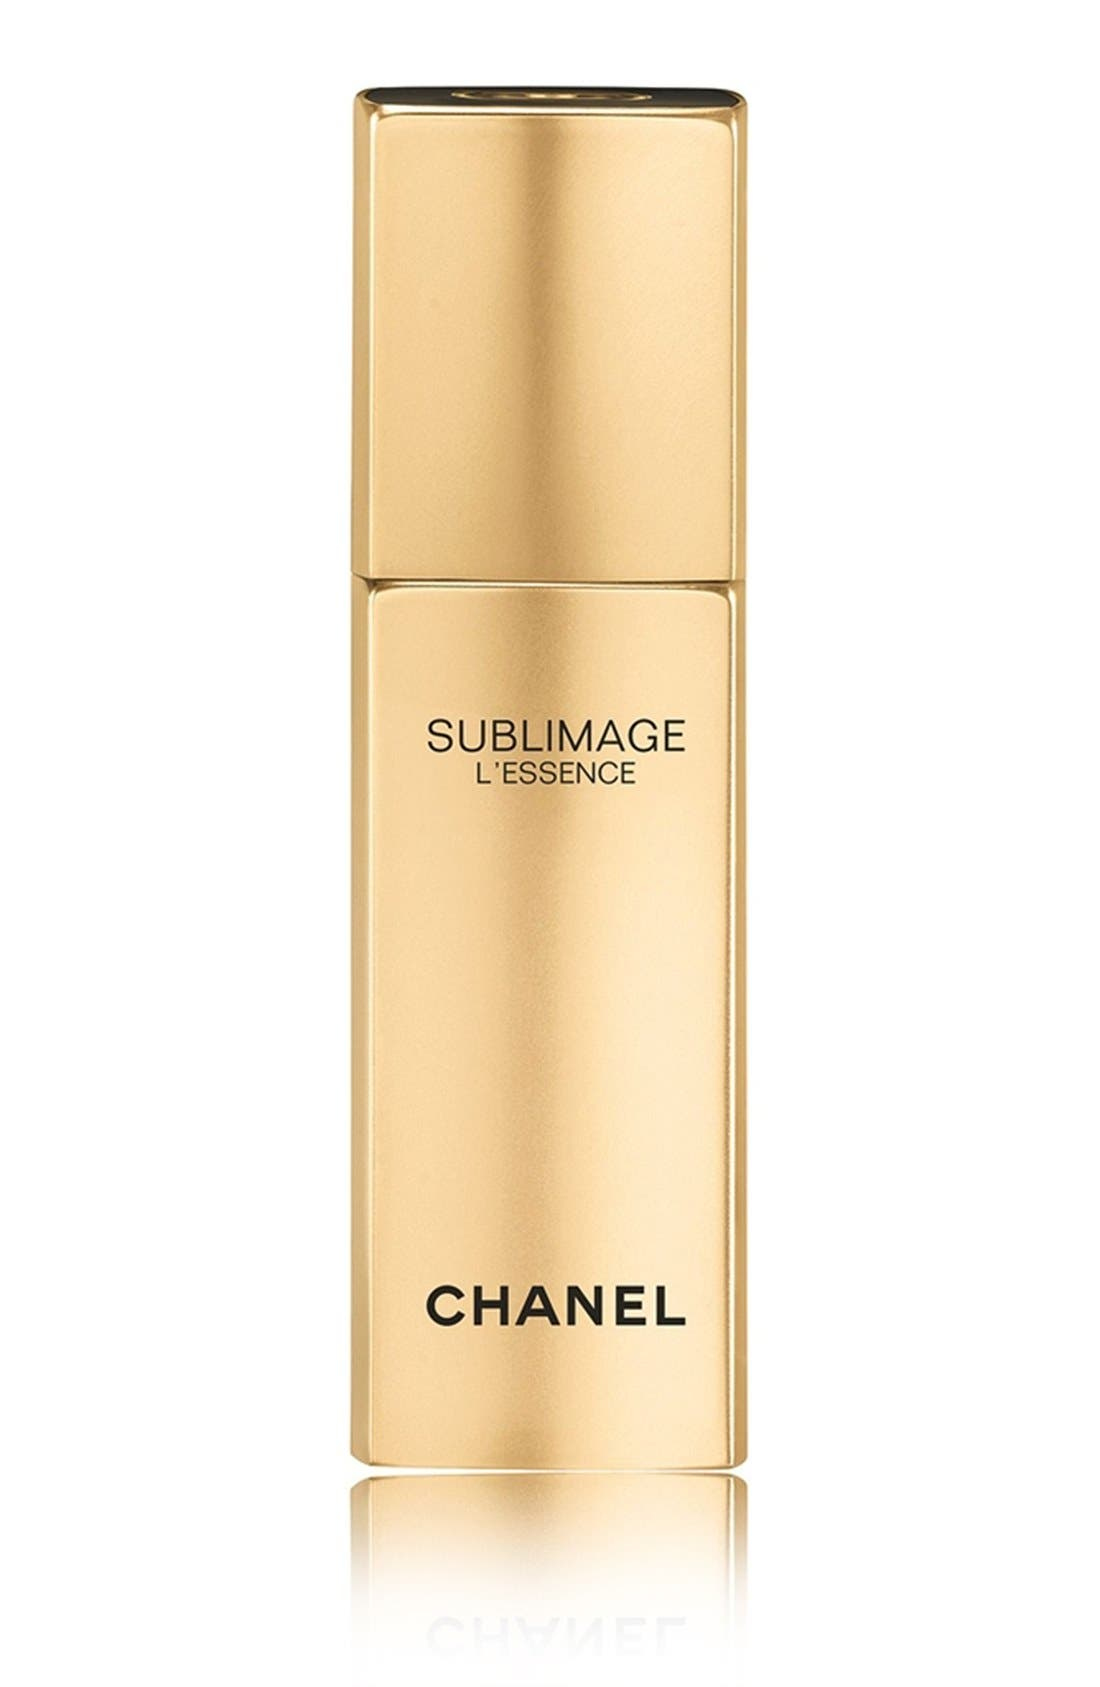 CHANEL SUBLIMAGE L'ESSENCE